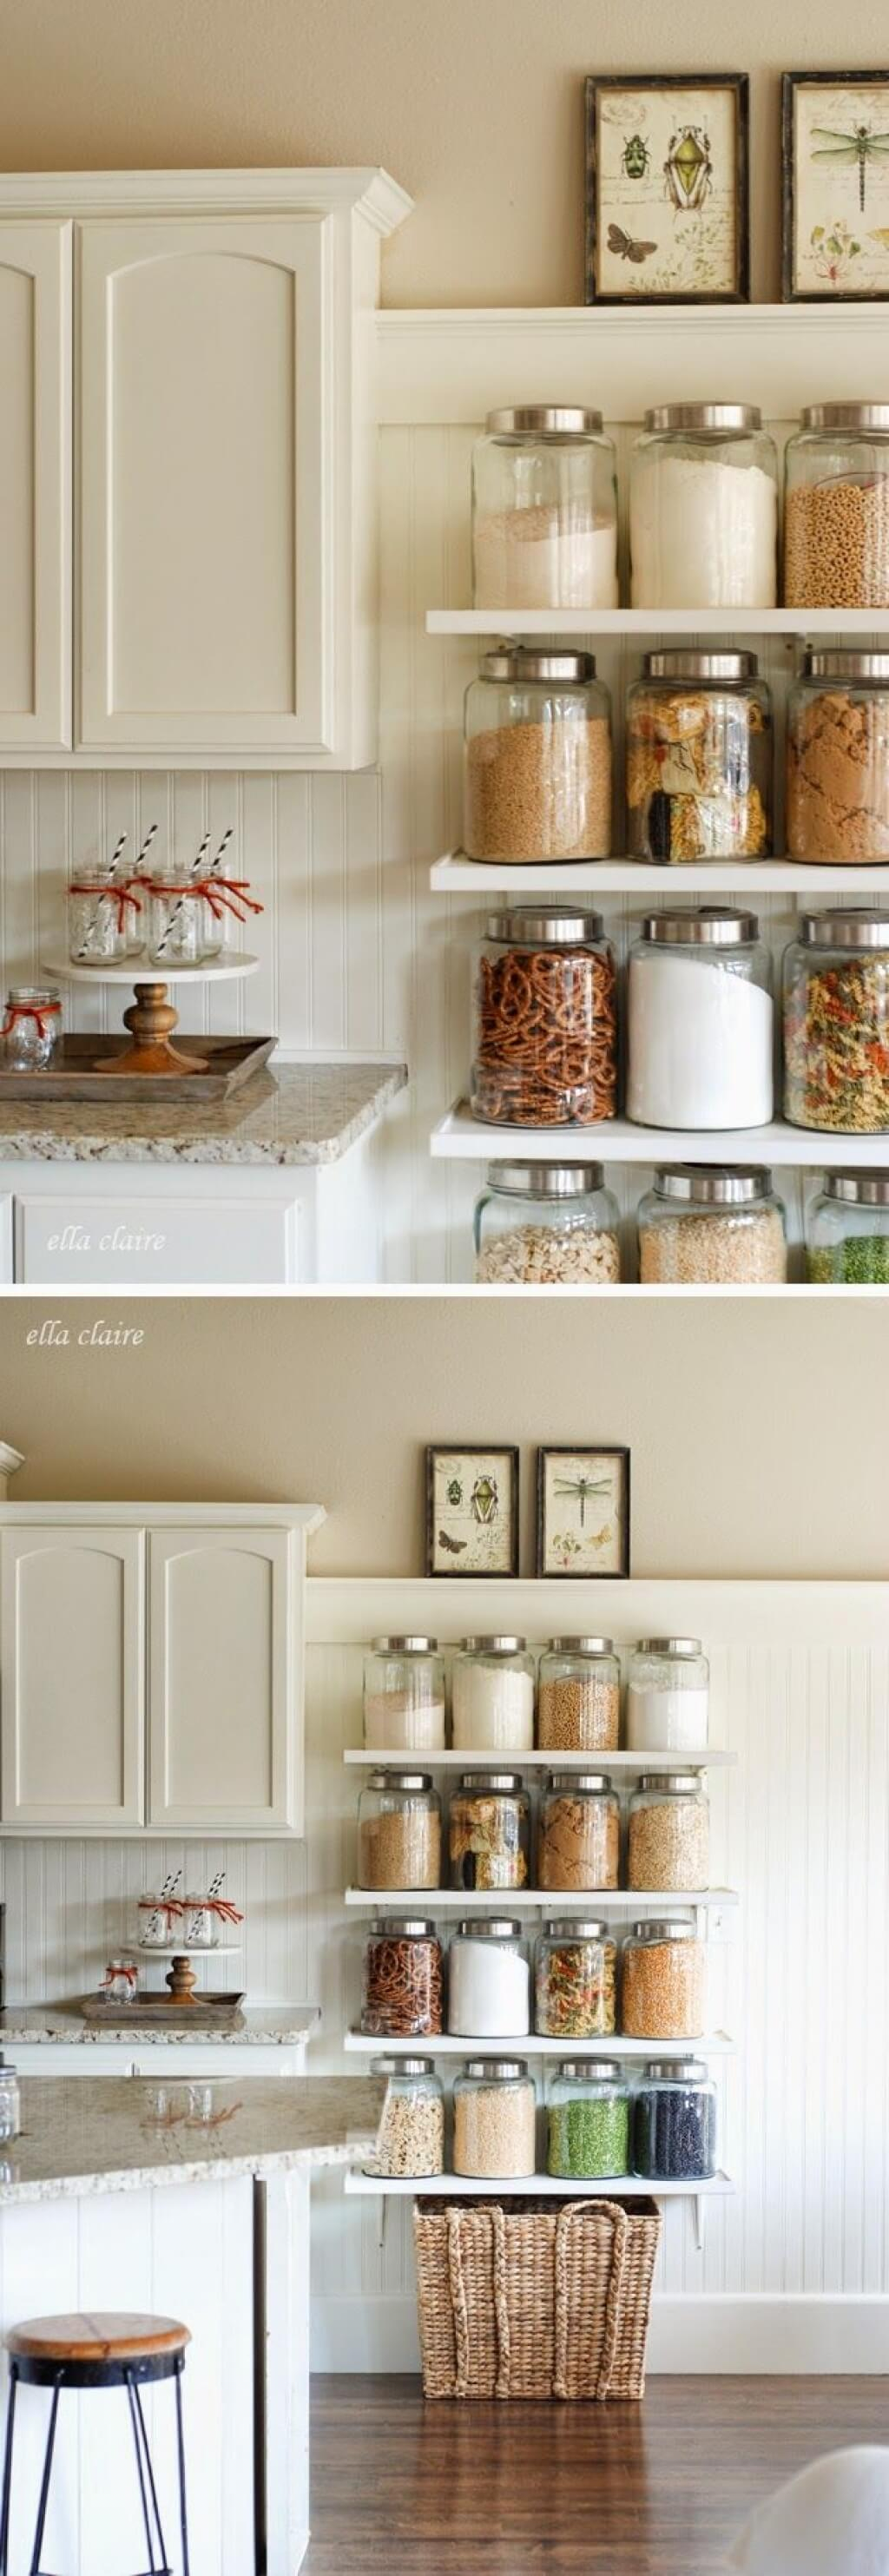 35 Best Small Kitchen Storage Organization Ideas and Designs for 2018